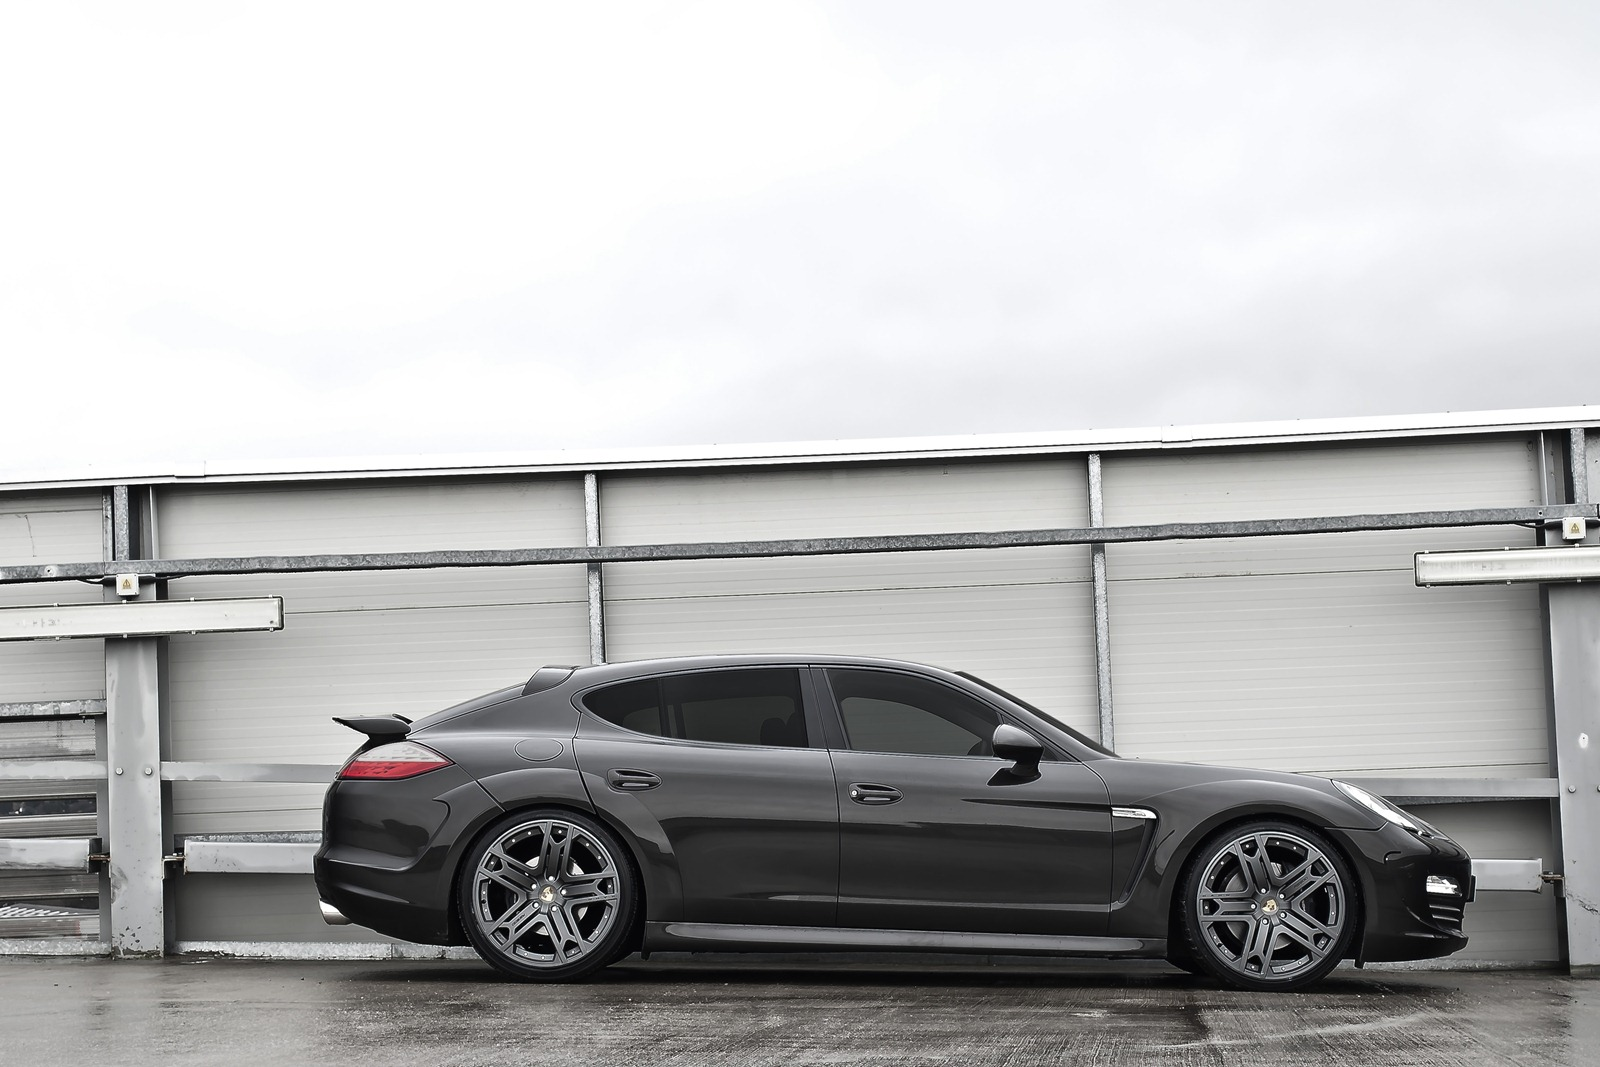 2012 Project Kahns Porsche Panamera Tune 3 2012 Project Kahns Porsche Panamera Tune revealed